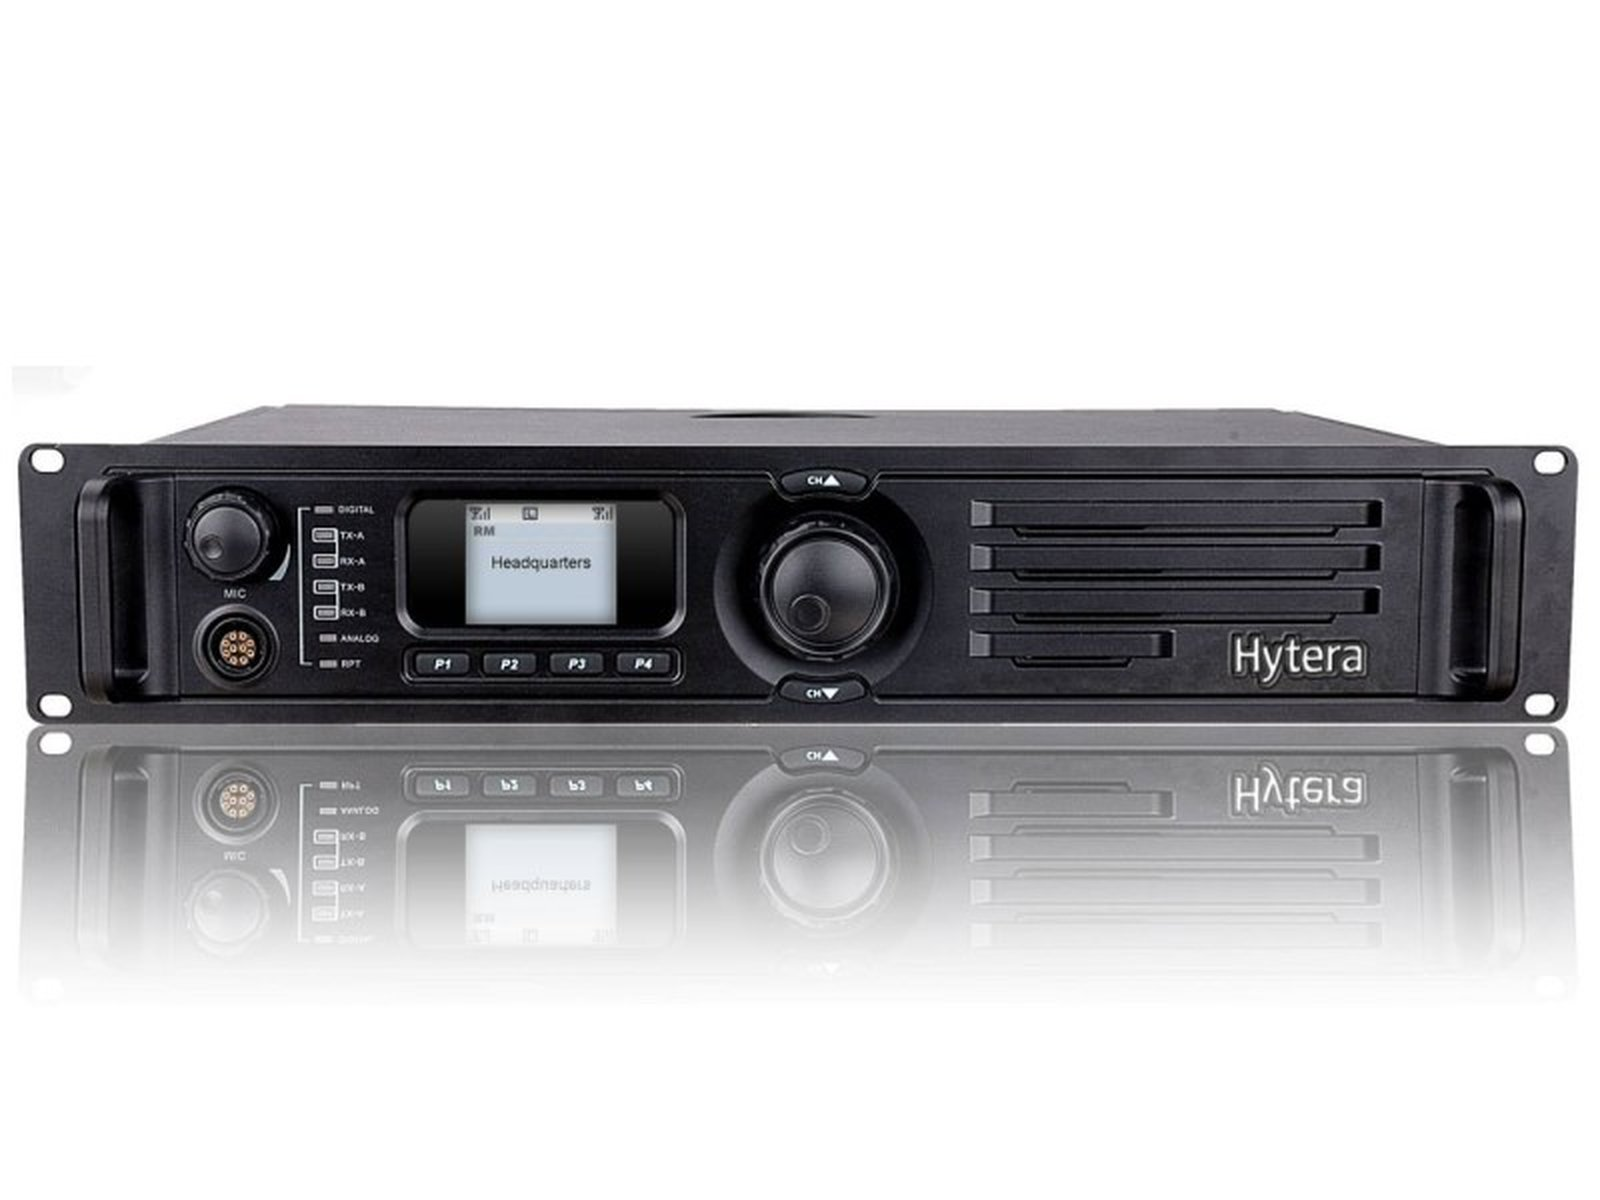 Hytera RD985 DMR Repeater